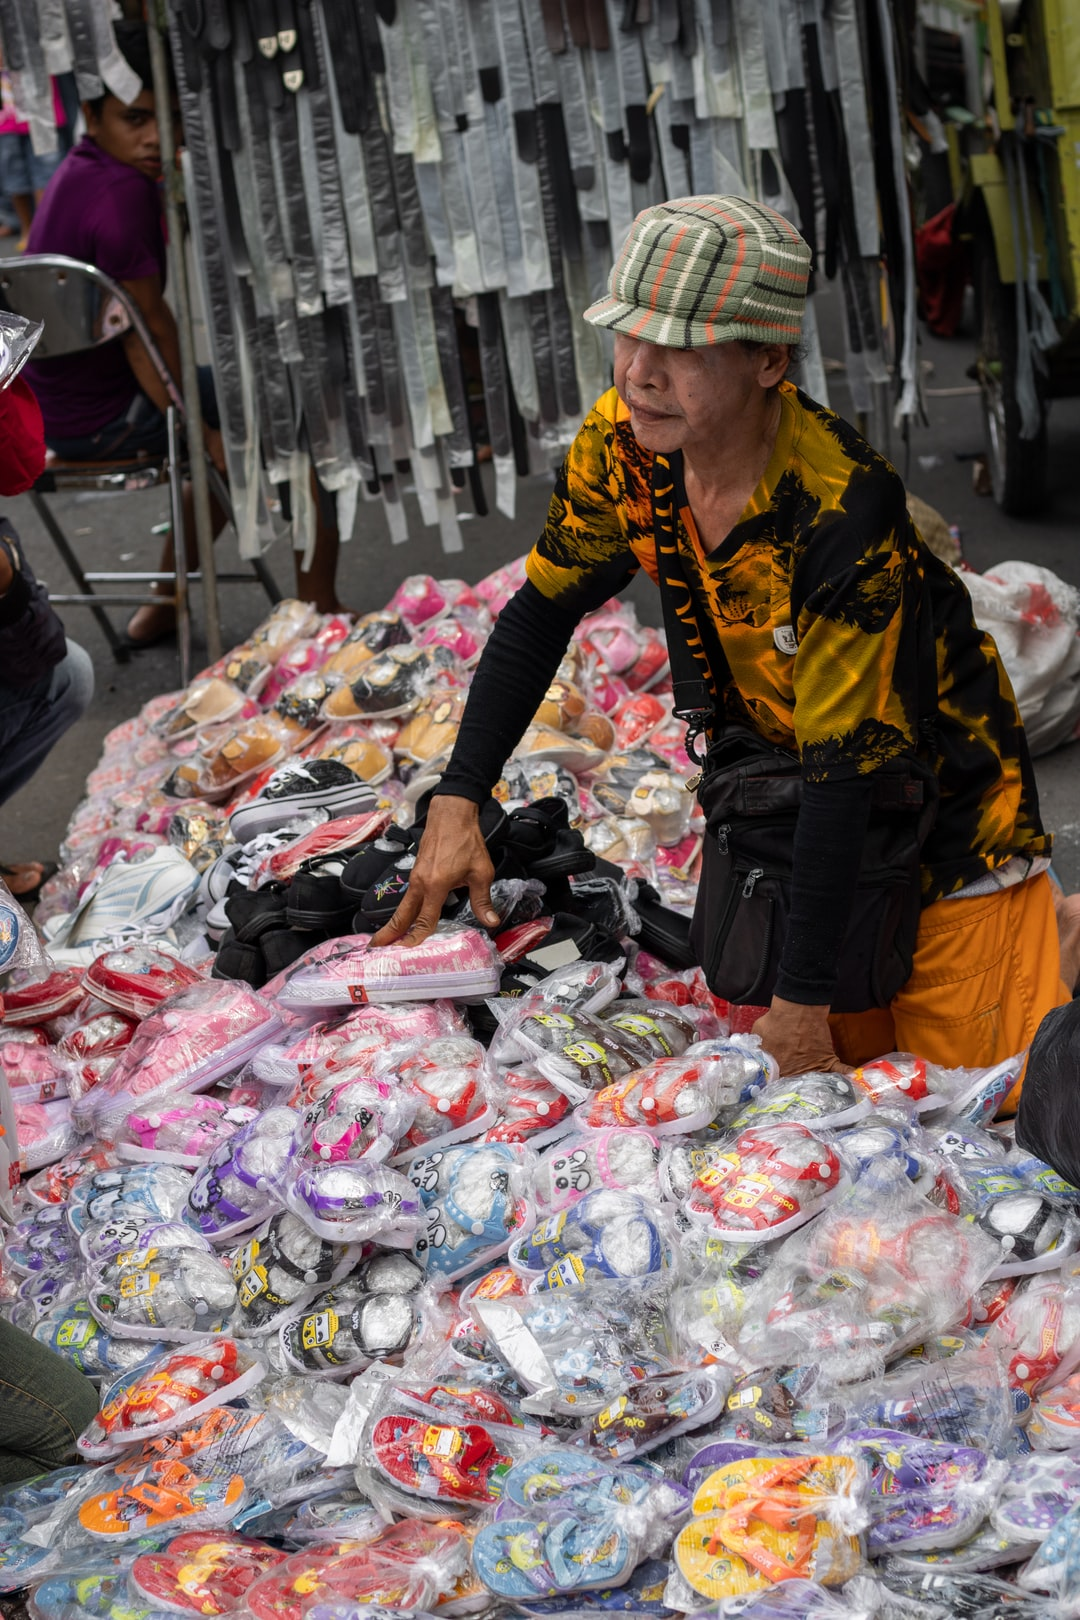 Every week at Sunday Morning the street near Tugu Pahlawan(Heroes Monument) become a street market.